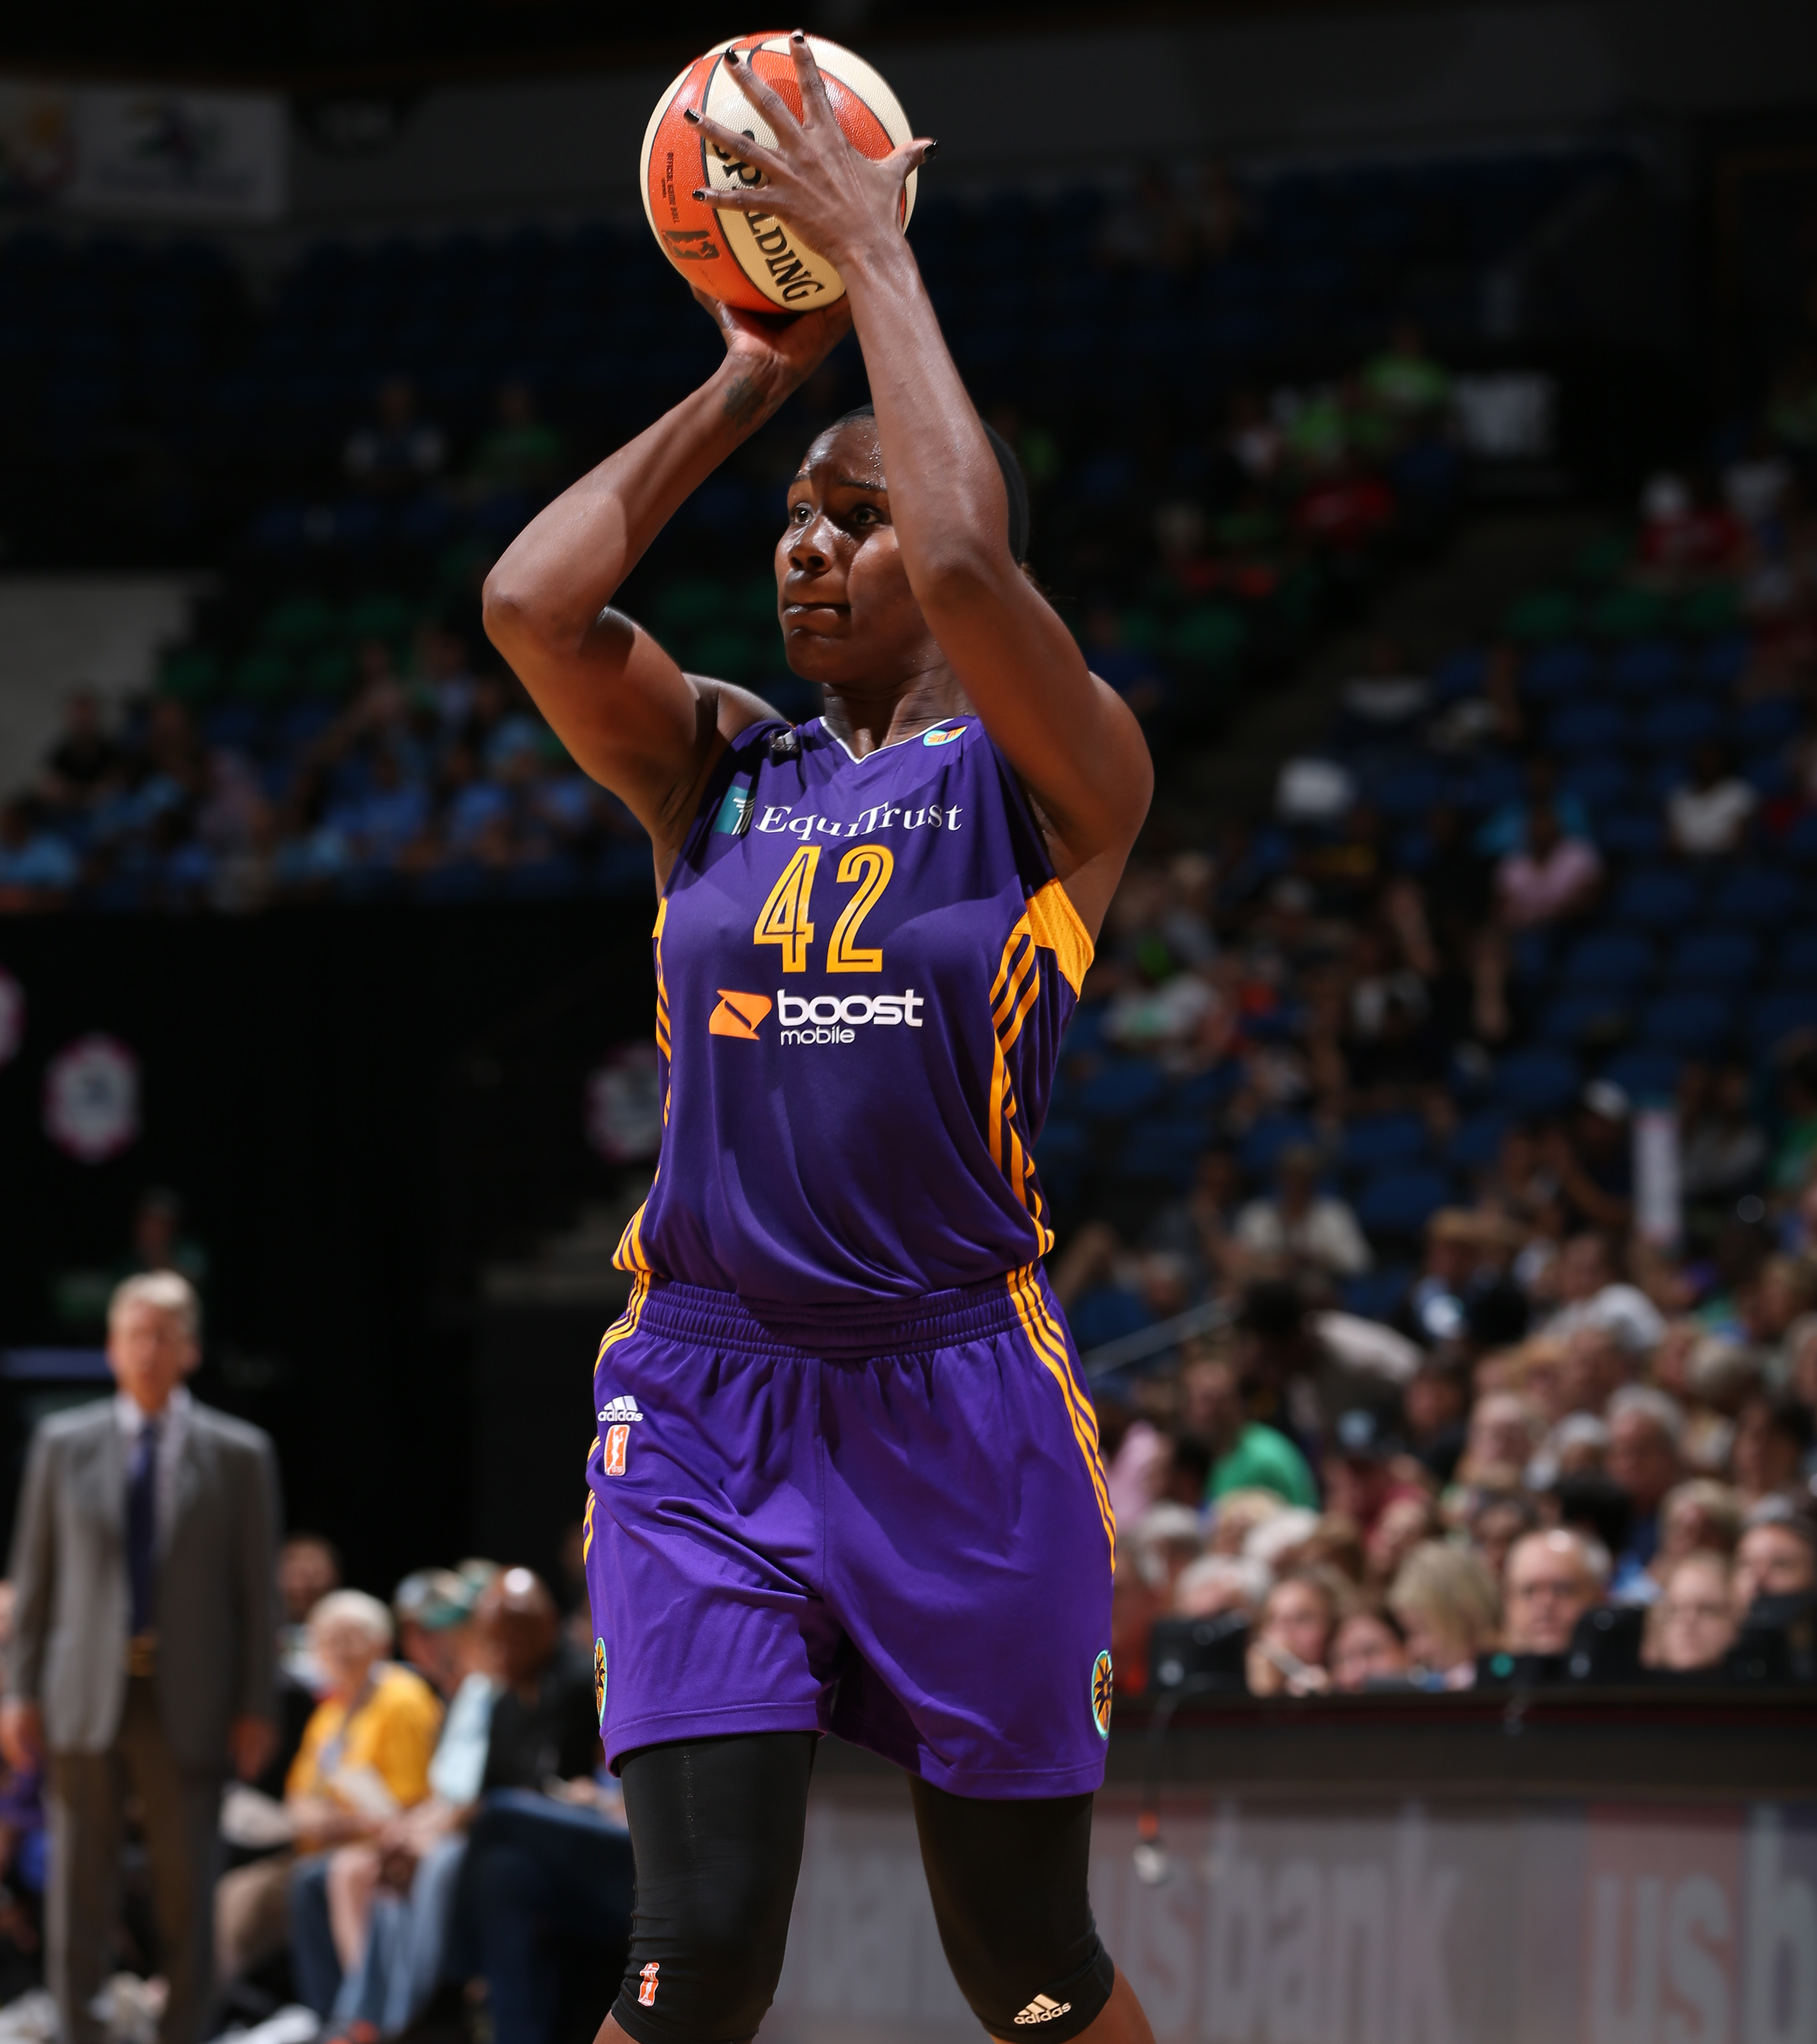 As good as the Minnesota Lynx played defensively that night, they could not find an answer for Sparks center Jantel Lavender. Lavender finished with 15 points on 7-of-10 shooting and grabbed 10 rebounds as well.